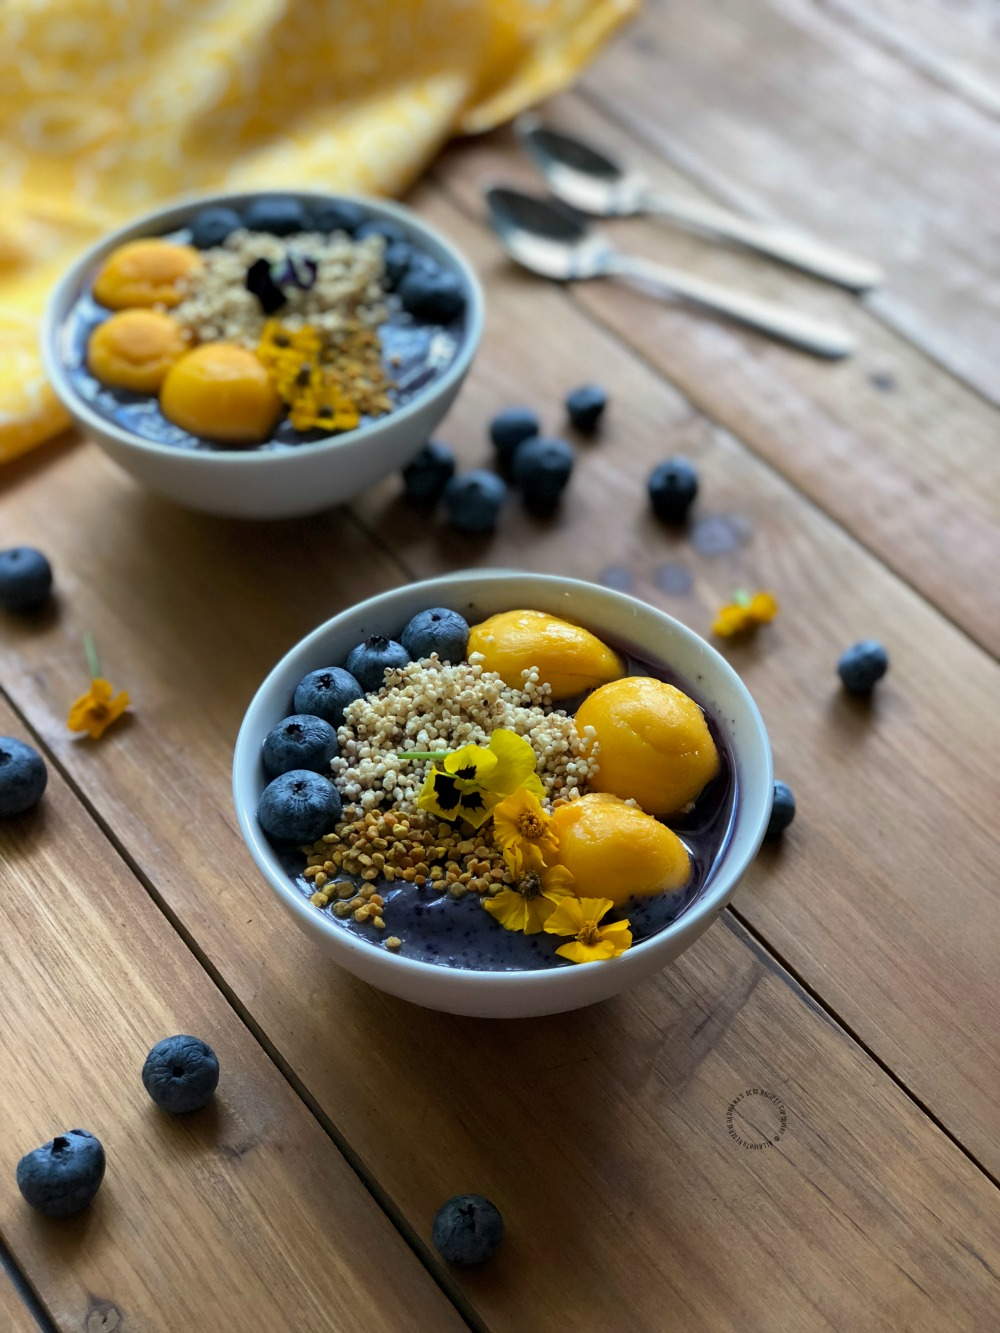 Sensible blueberry power smoothie bowl garnished with edible flowers, amaranth and bee pollen